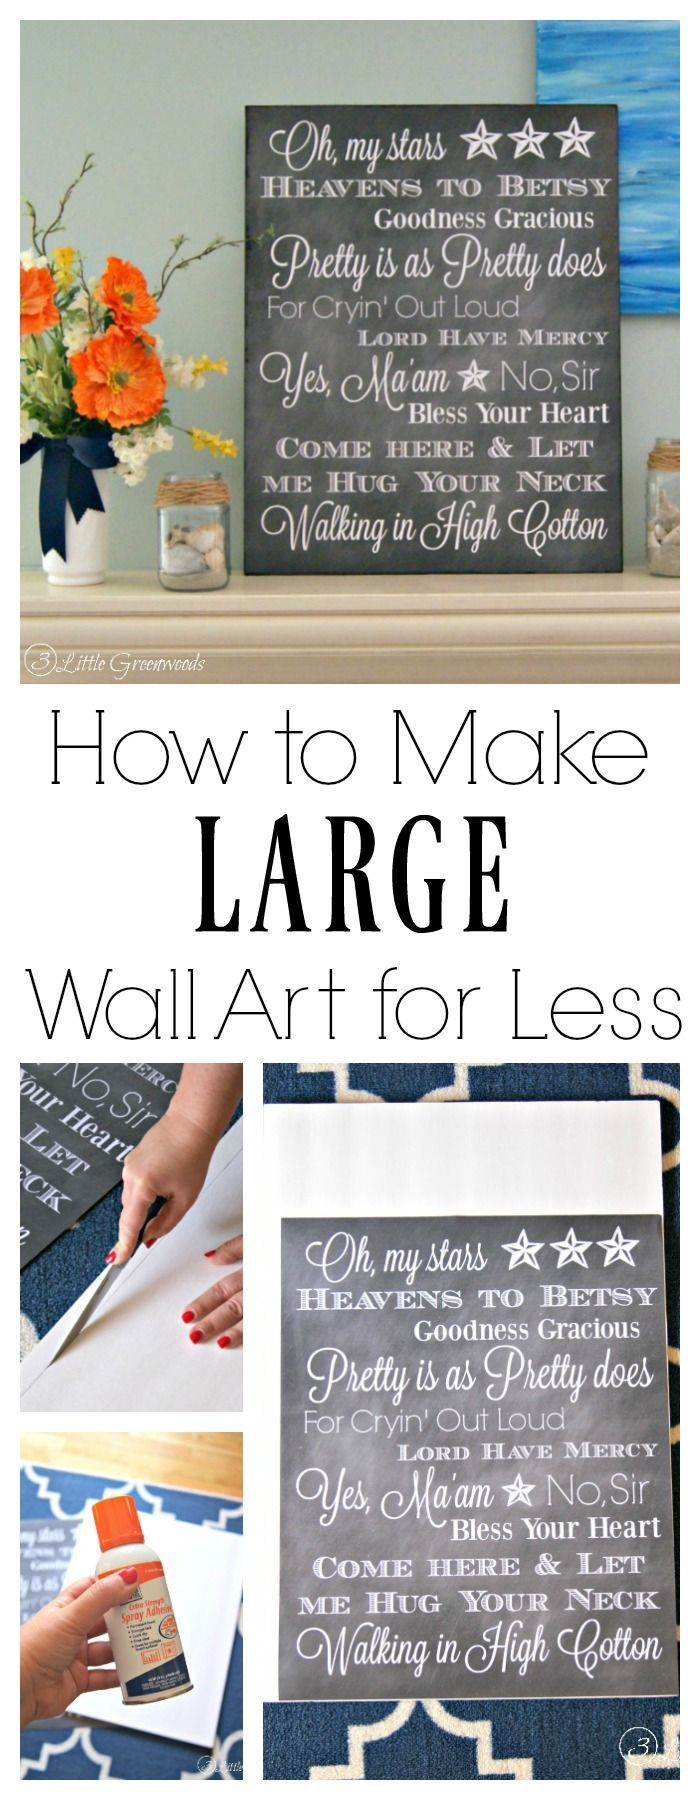 How to Make Large Wall Art for